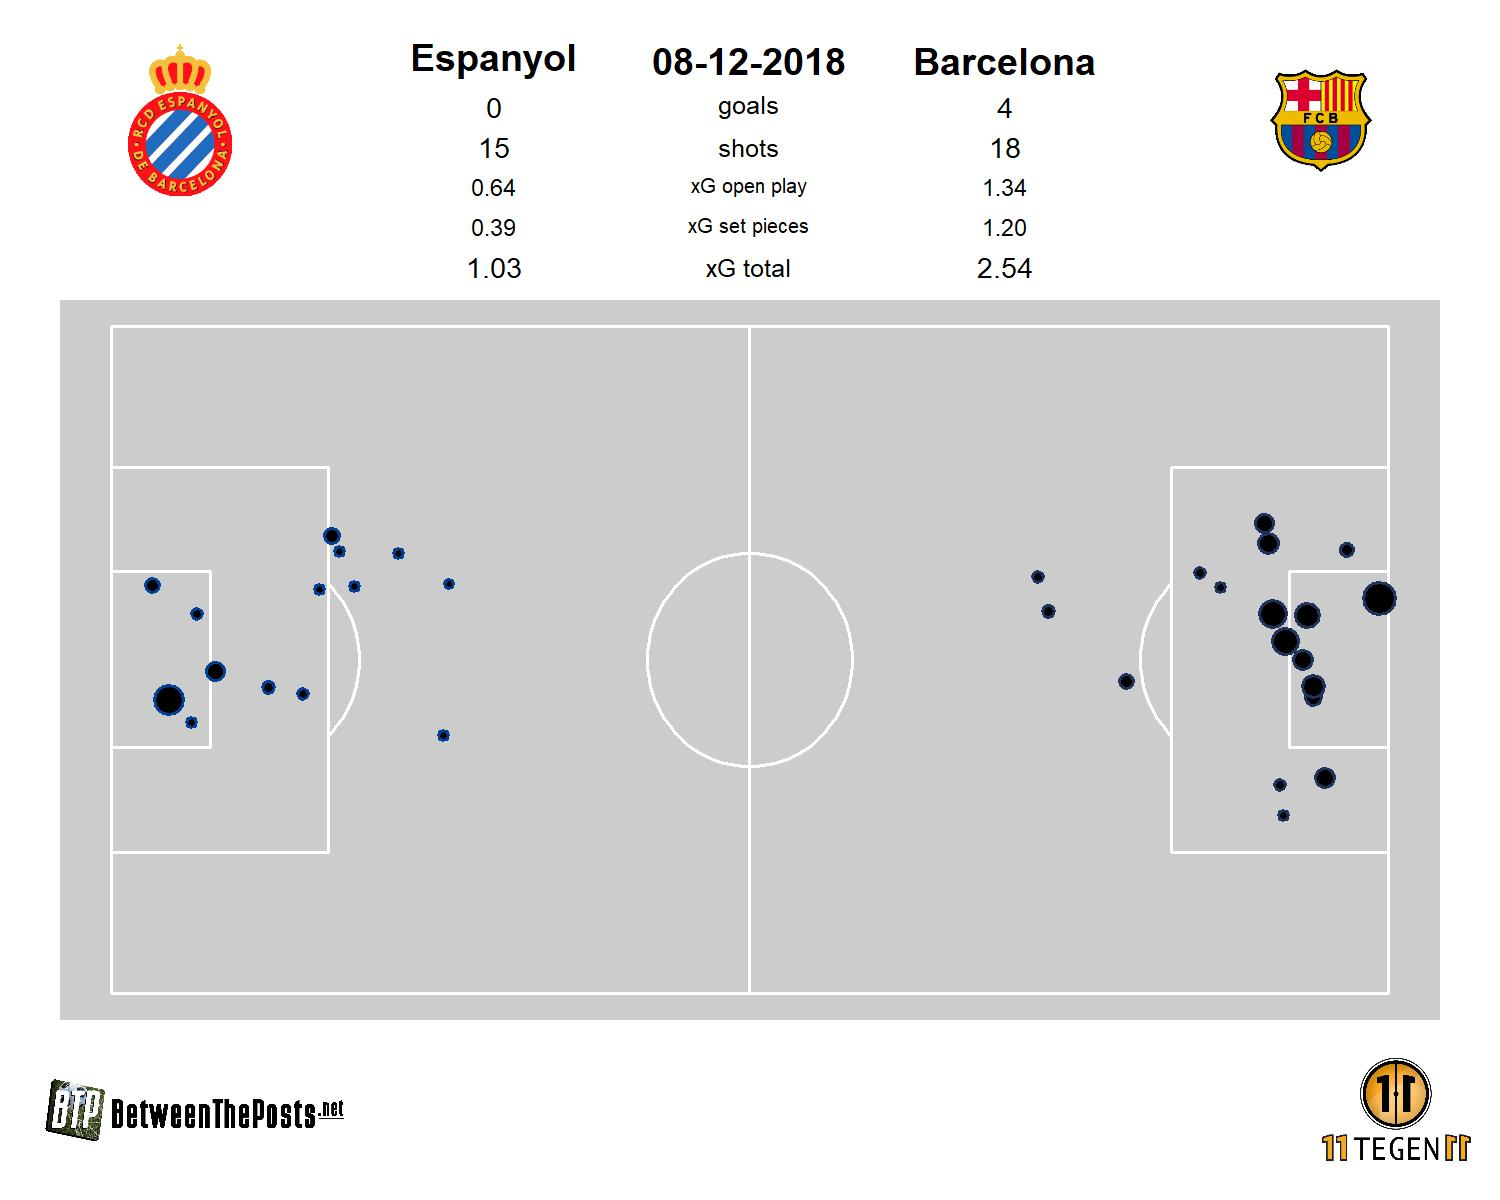 [img]https://betweentheposts.net/wp-content/uploads/2018/12/2018-12-08-Espanyol-Pitch-plot-Espanyol-0-4-Barcelona.jpg[/img]